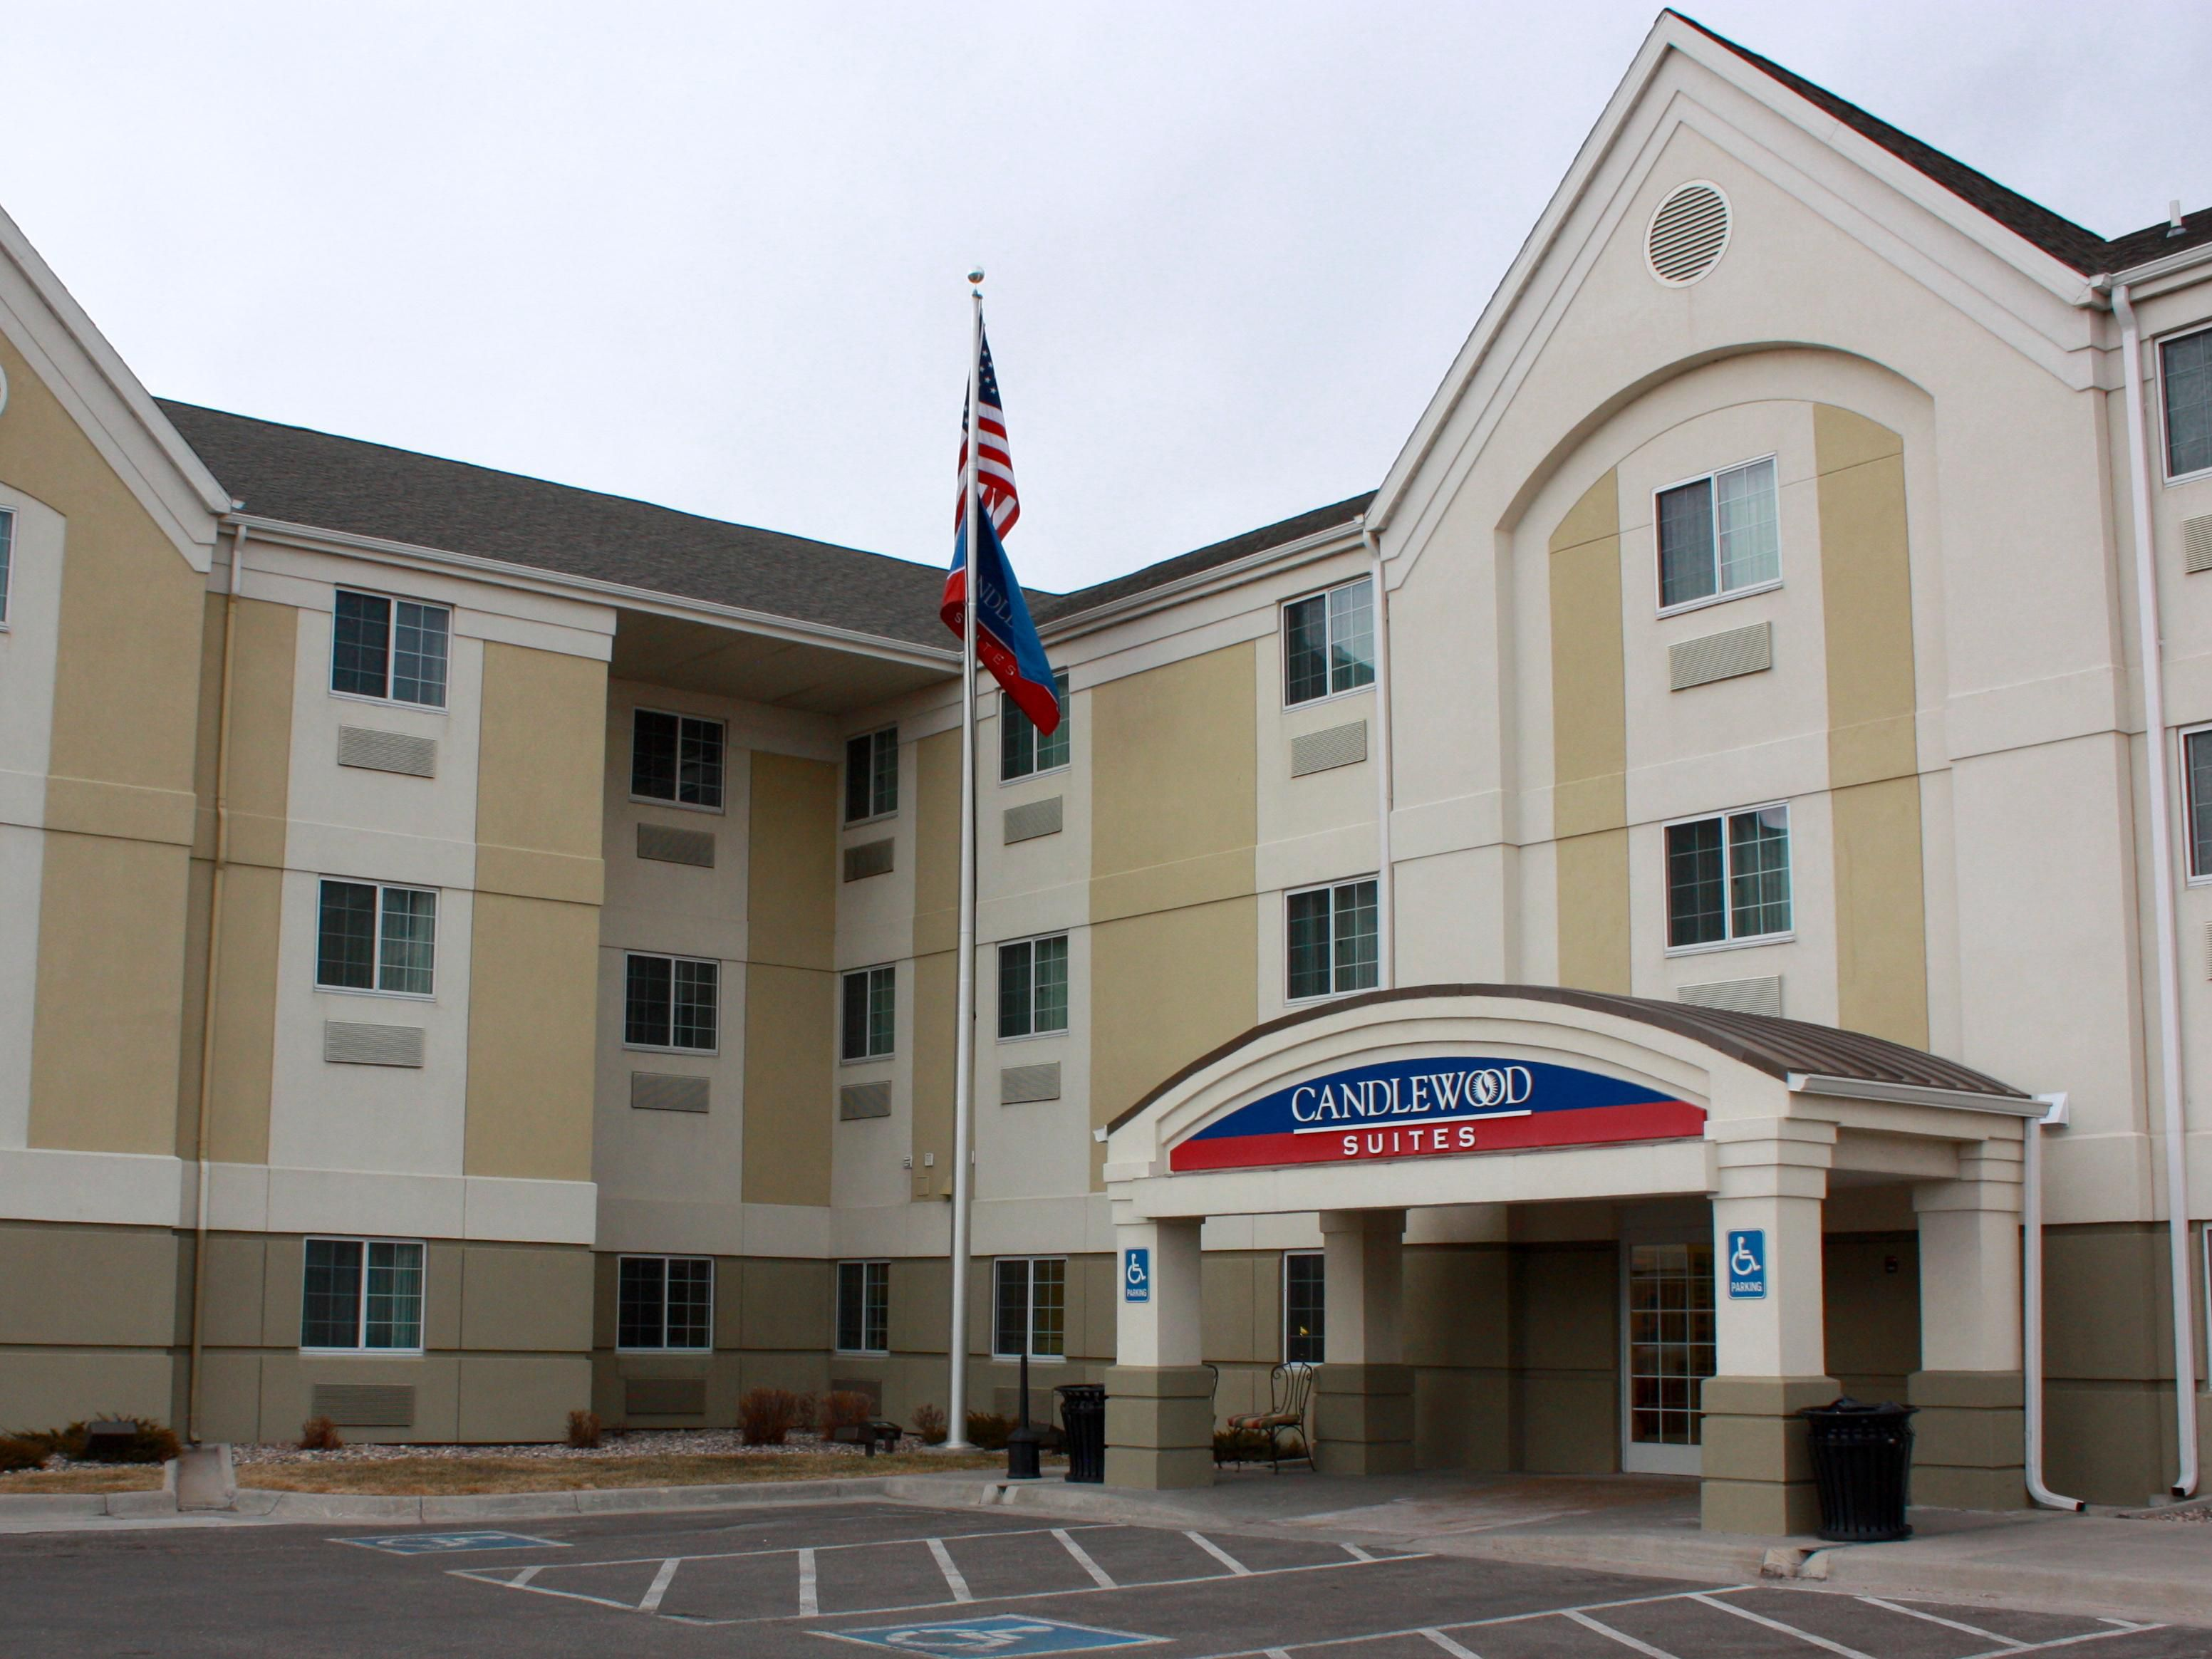 Candlewood Suites Cheyenne - Extended Stay Hotel in Cheyenne, Wyoming